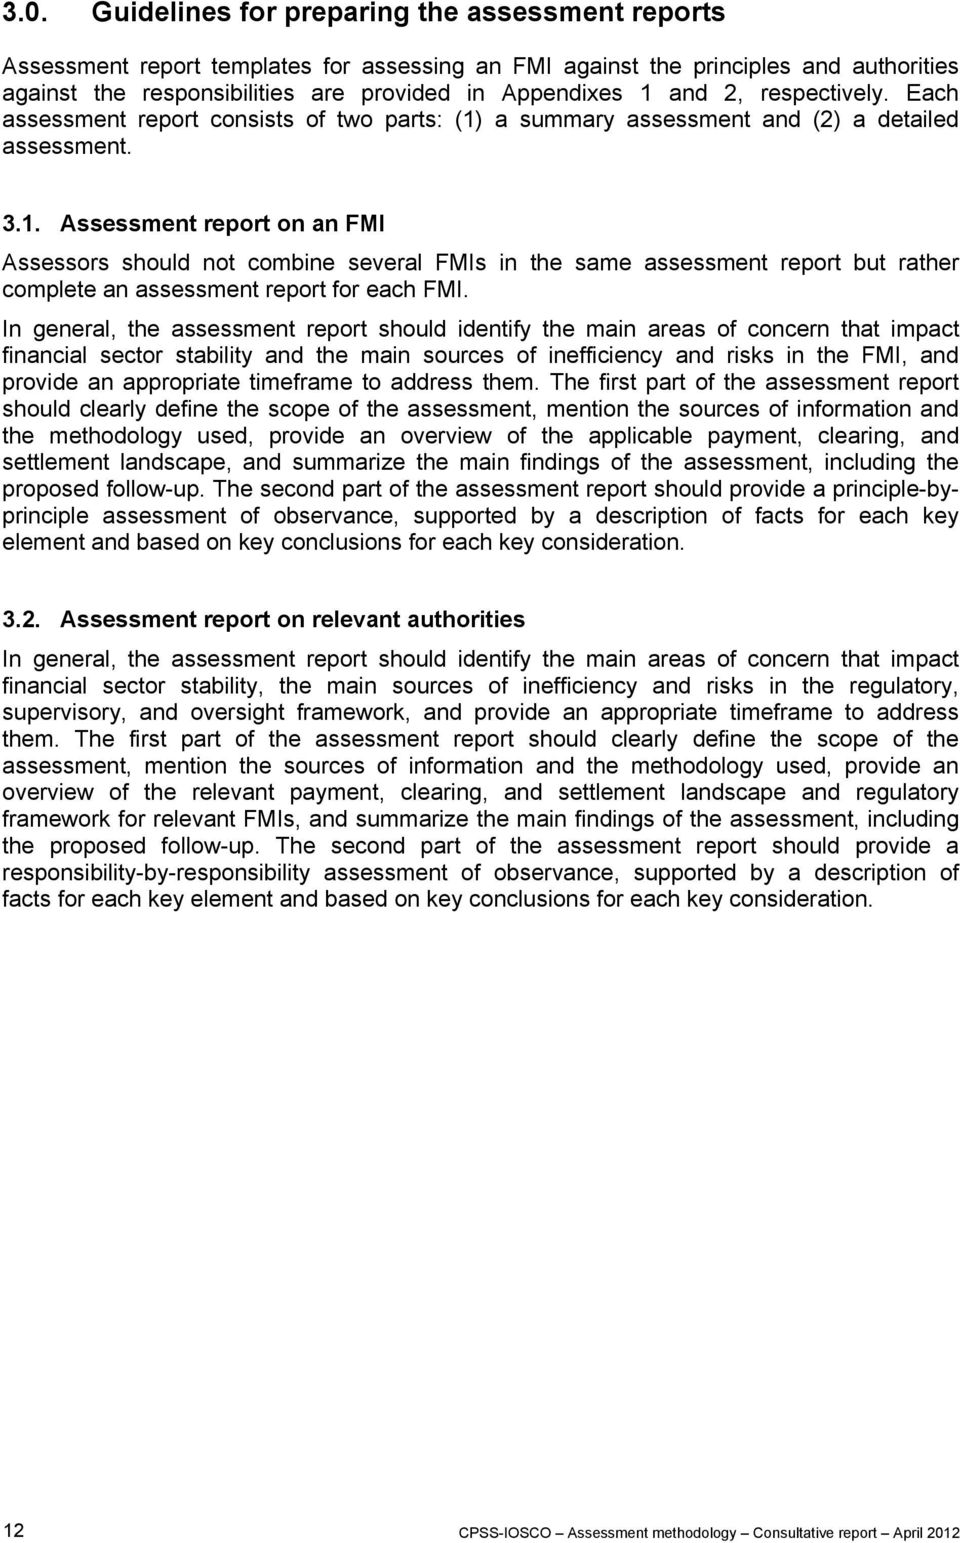 a summary assessment and (2) a detailed assessment. 3.1.